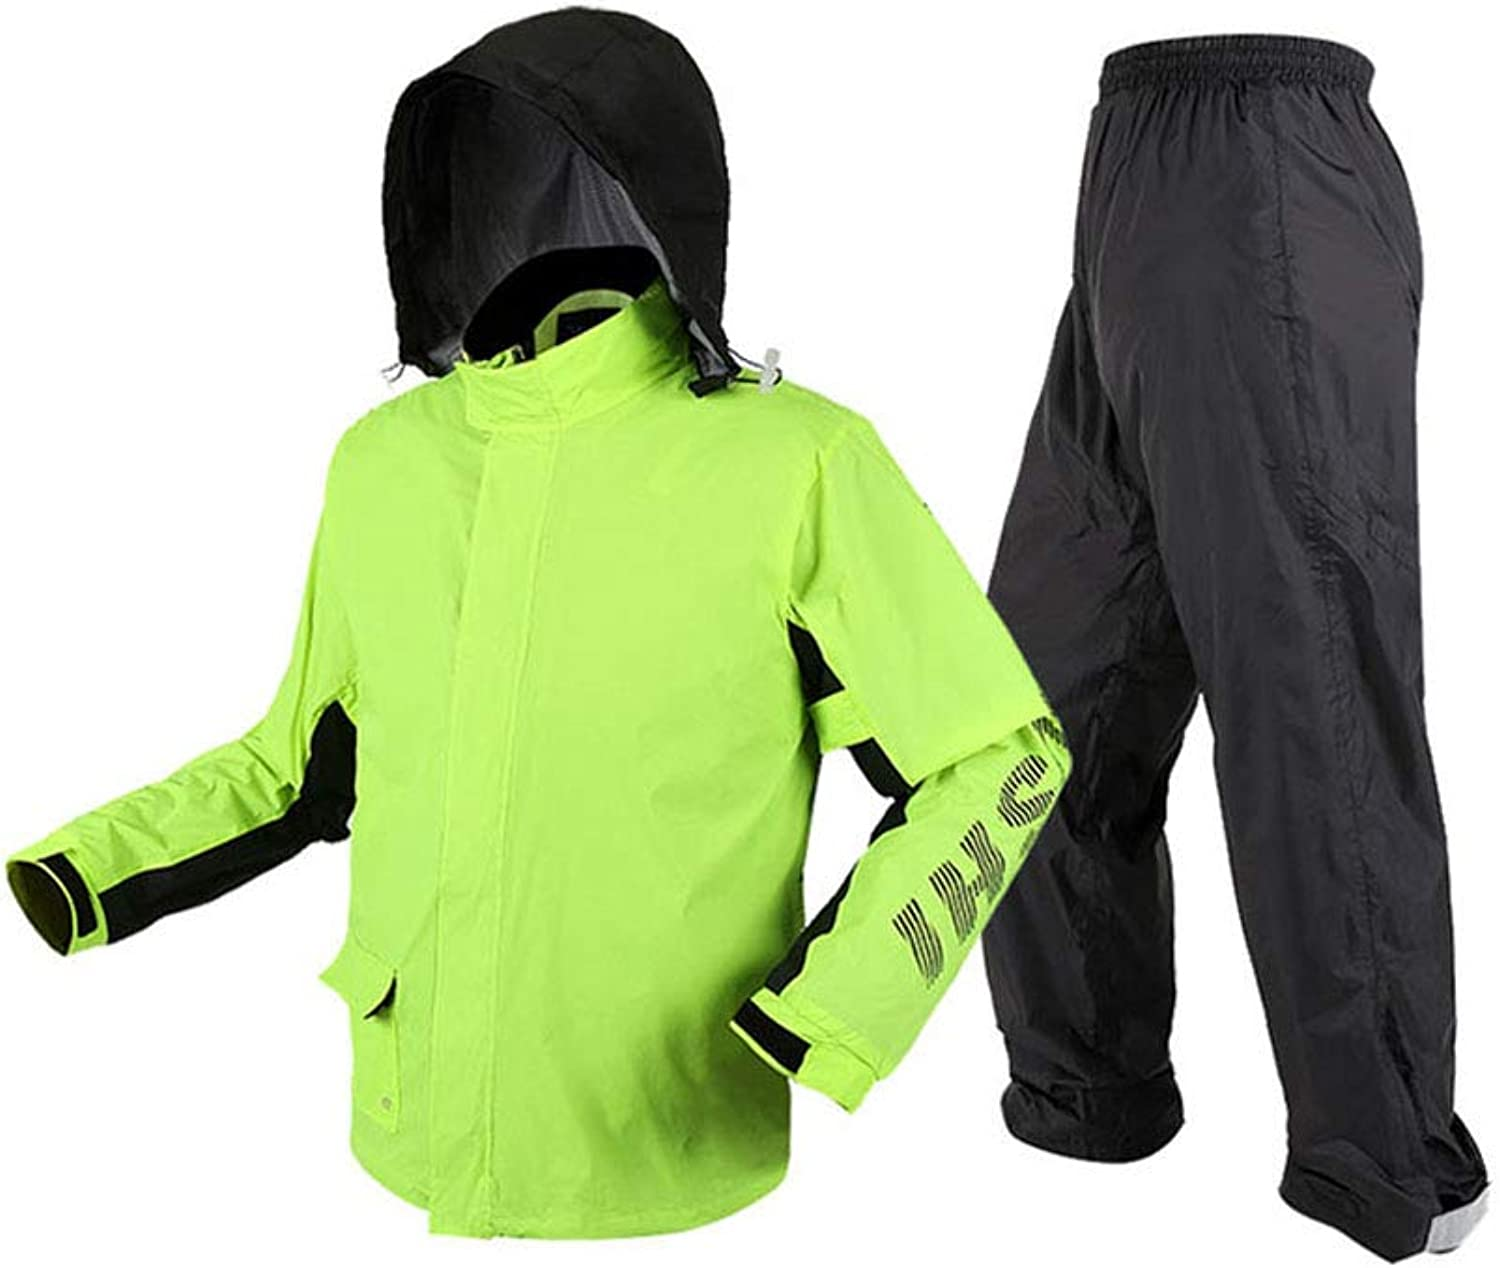 SYRAINCOAT Adult Rainstorm Raincoat Set Split Thicken Waterproof Comfortable Breathable Reusable Fluorescent Green Outdoor Sports Lightweight Rainwear